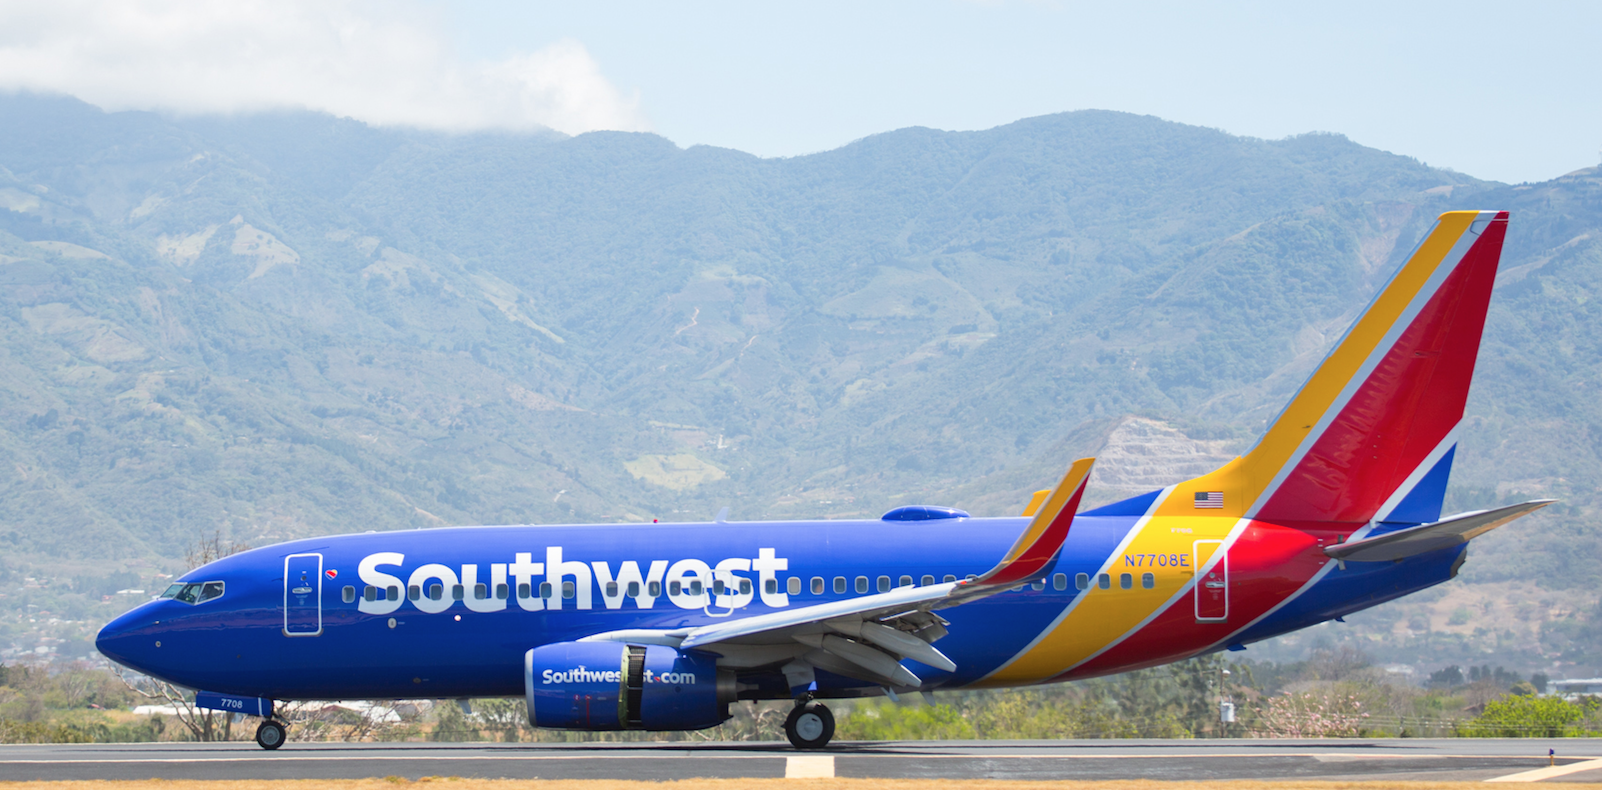 Southwest Airlines Launches Several New Routes - Points Miles & Martinis